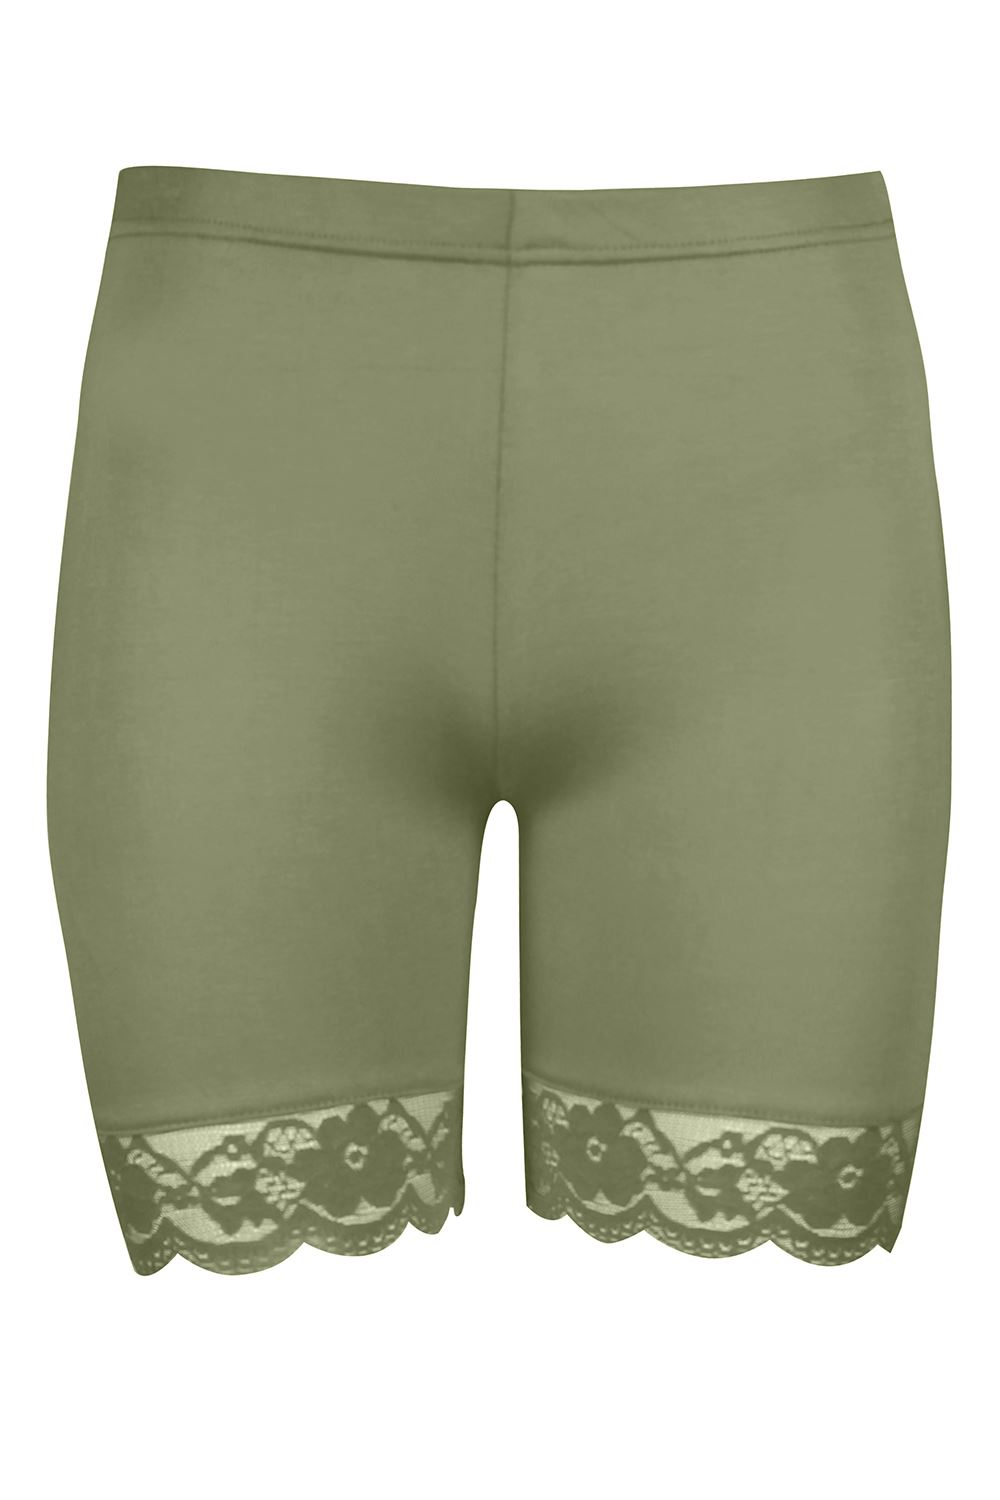 Women's Short Jersey Knit Pajama Lounge Pant Available in Plus Size. from $ 10 40 Prime. out of 5 stars Romwe. Women's Plus Size Casual Elastic Waist Summer Shorts Jersey Walking Shorts. from $ 14 99 Prime. out of 5 stars Sobrisah. Women's Elastic Waist Soft Knit Jersey Bermuda Shorts with Drawstring.